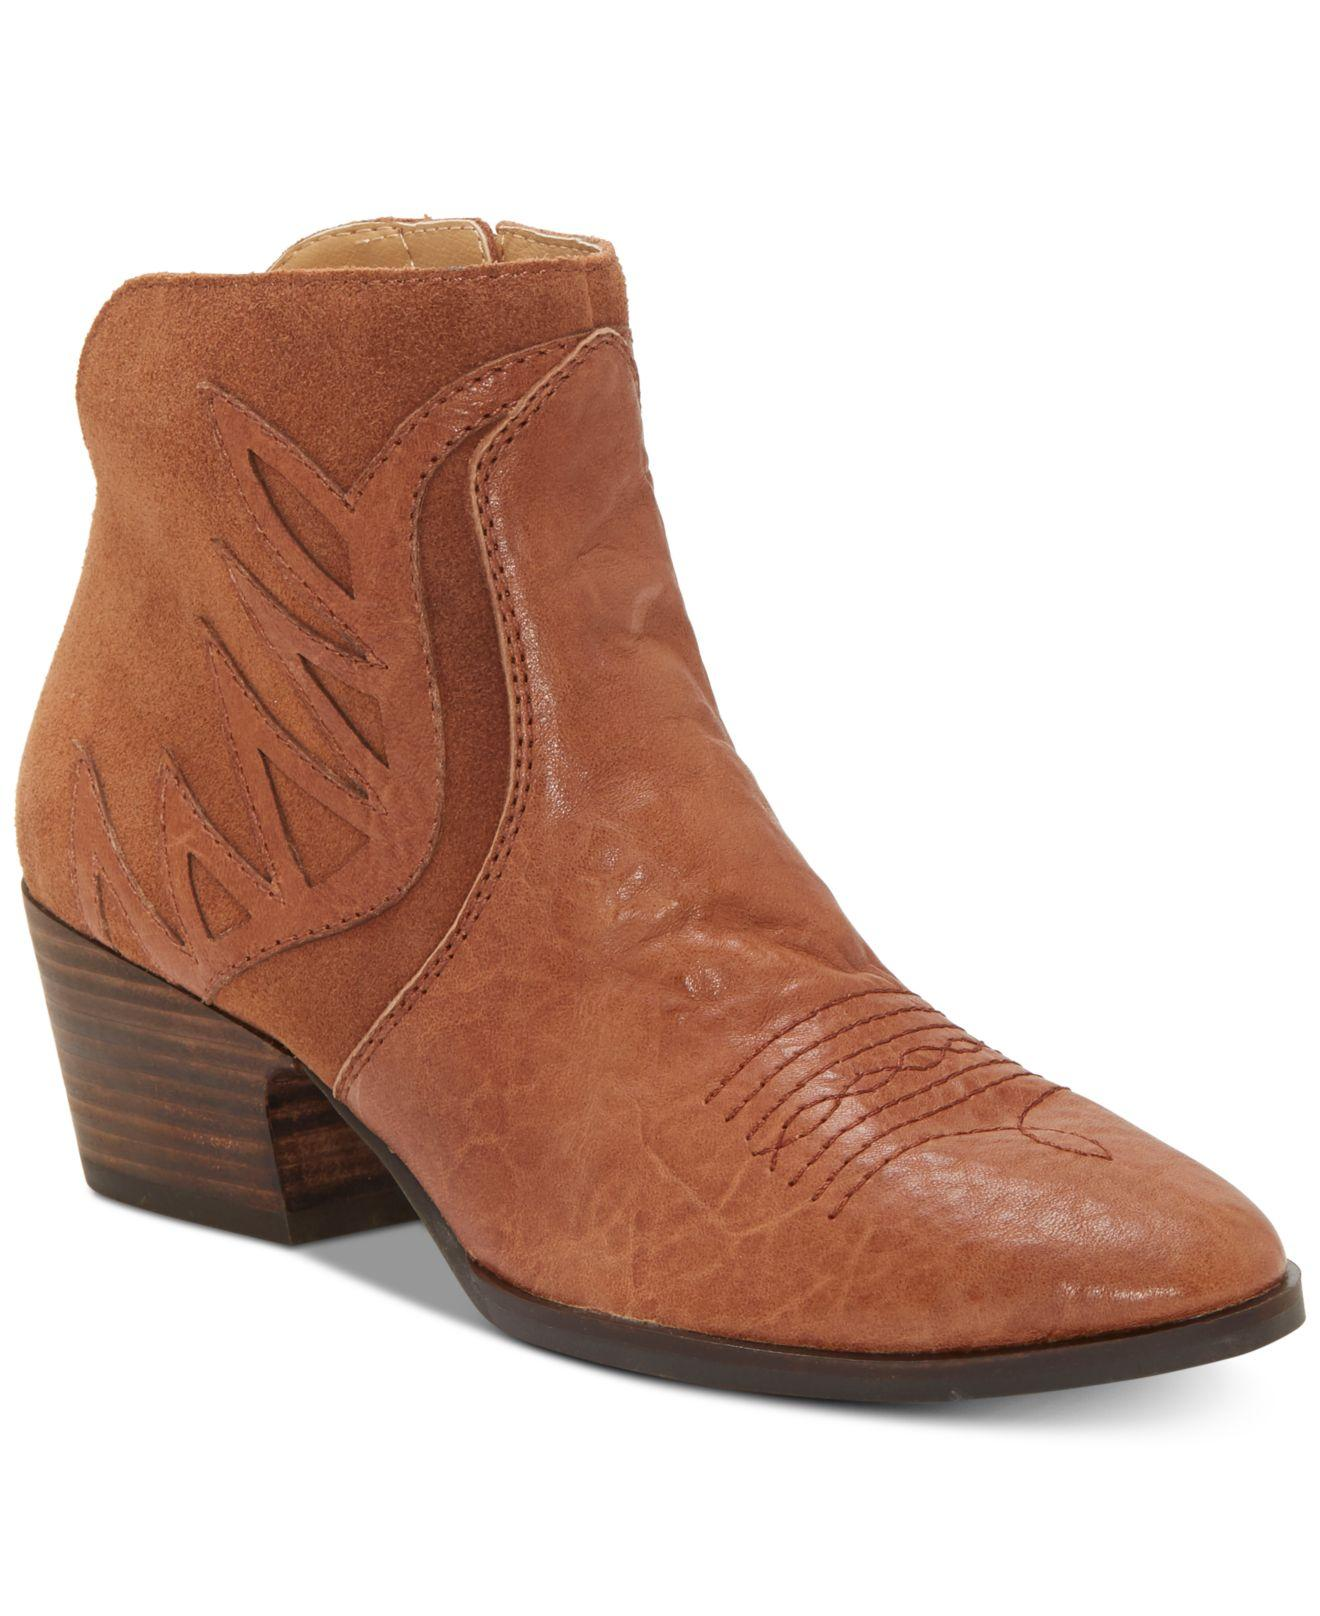 Lucky Brand Idellina Bootie in Brown - Lyst